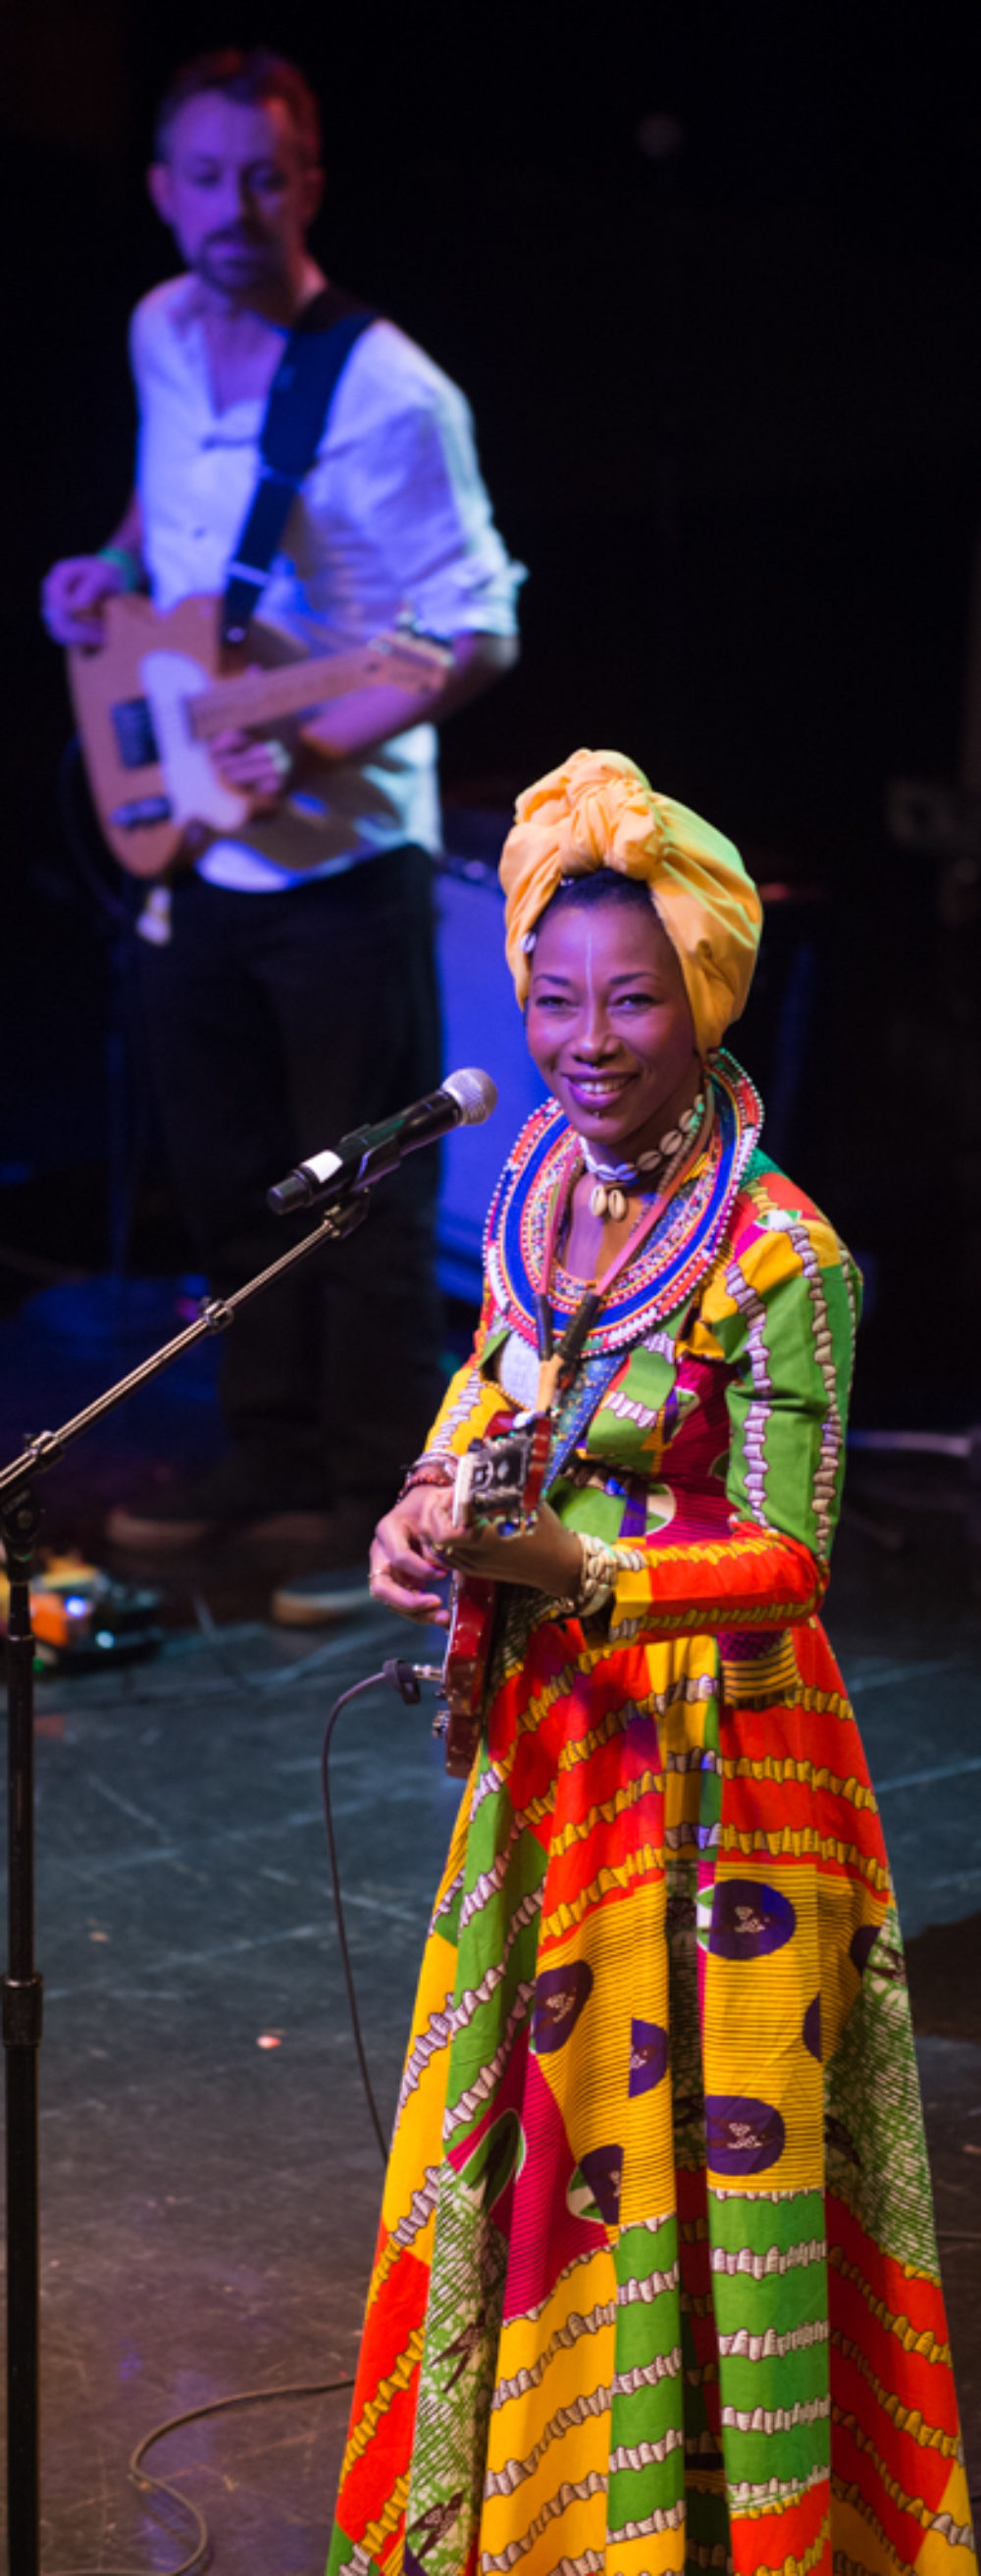 Fatou and Sam Dickey, guitarist and director of Fatou's American band